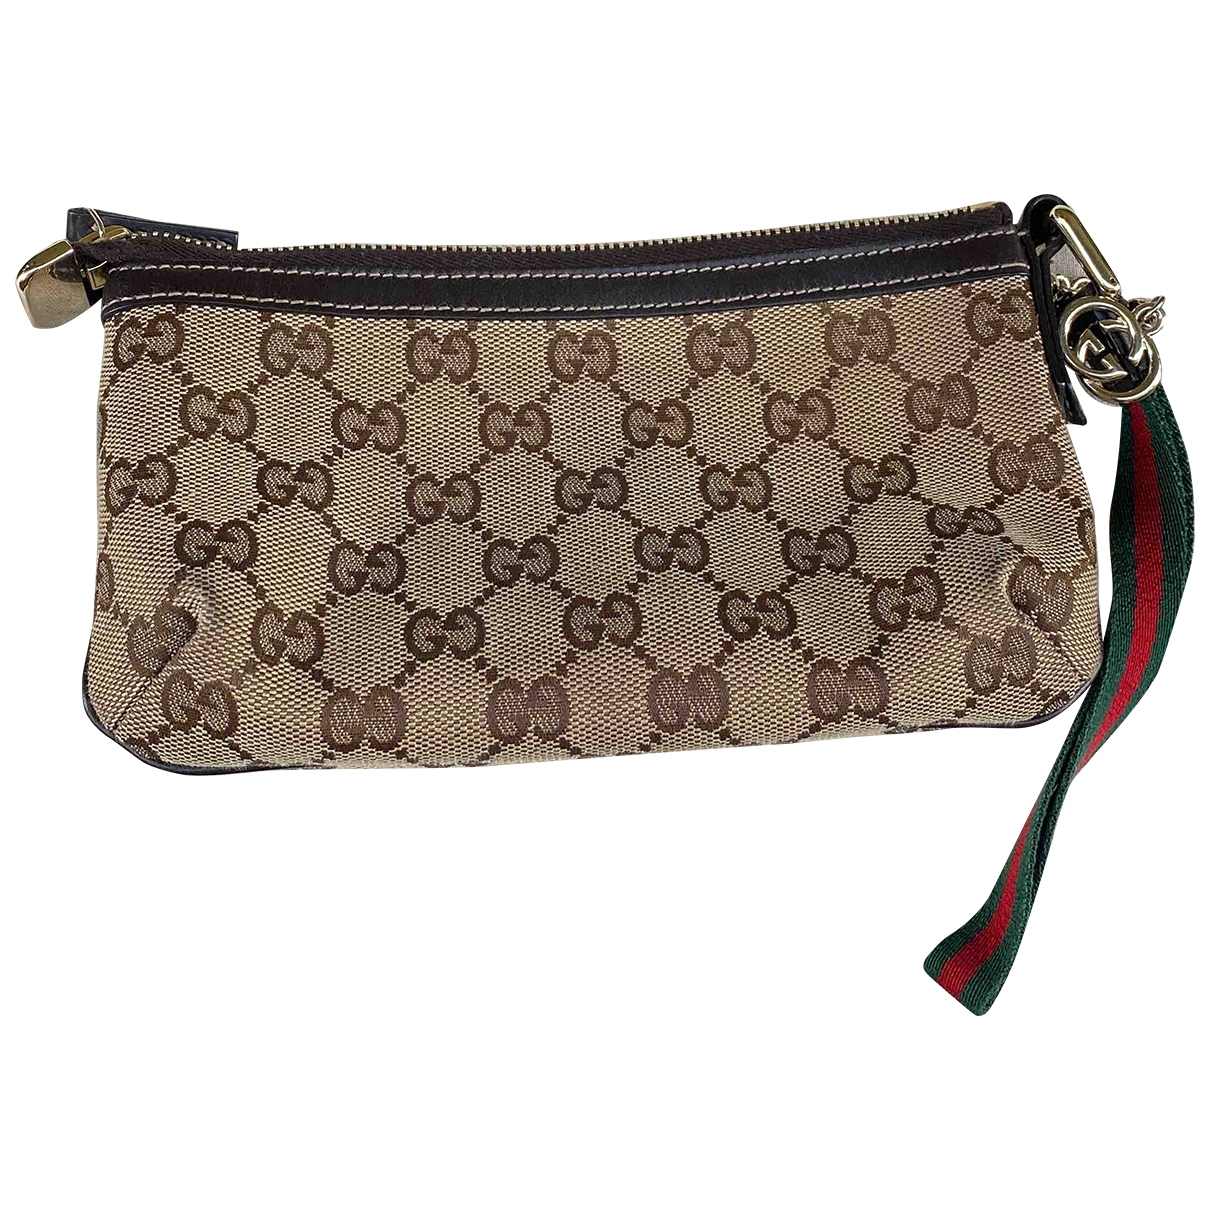 Gucci \N Clutch in  Kamel Leinen